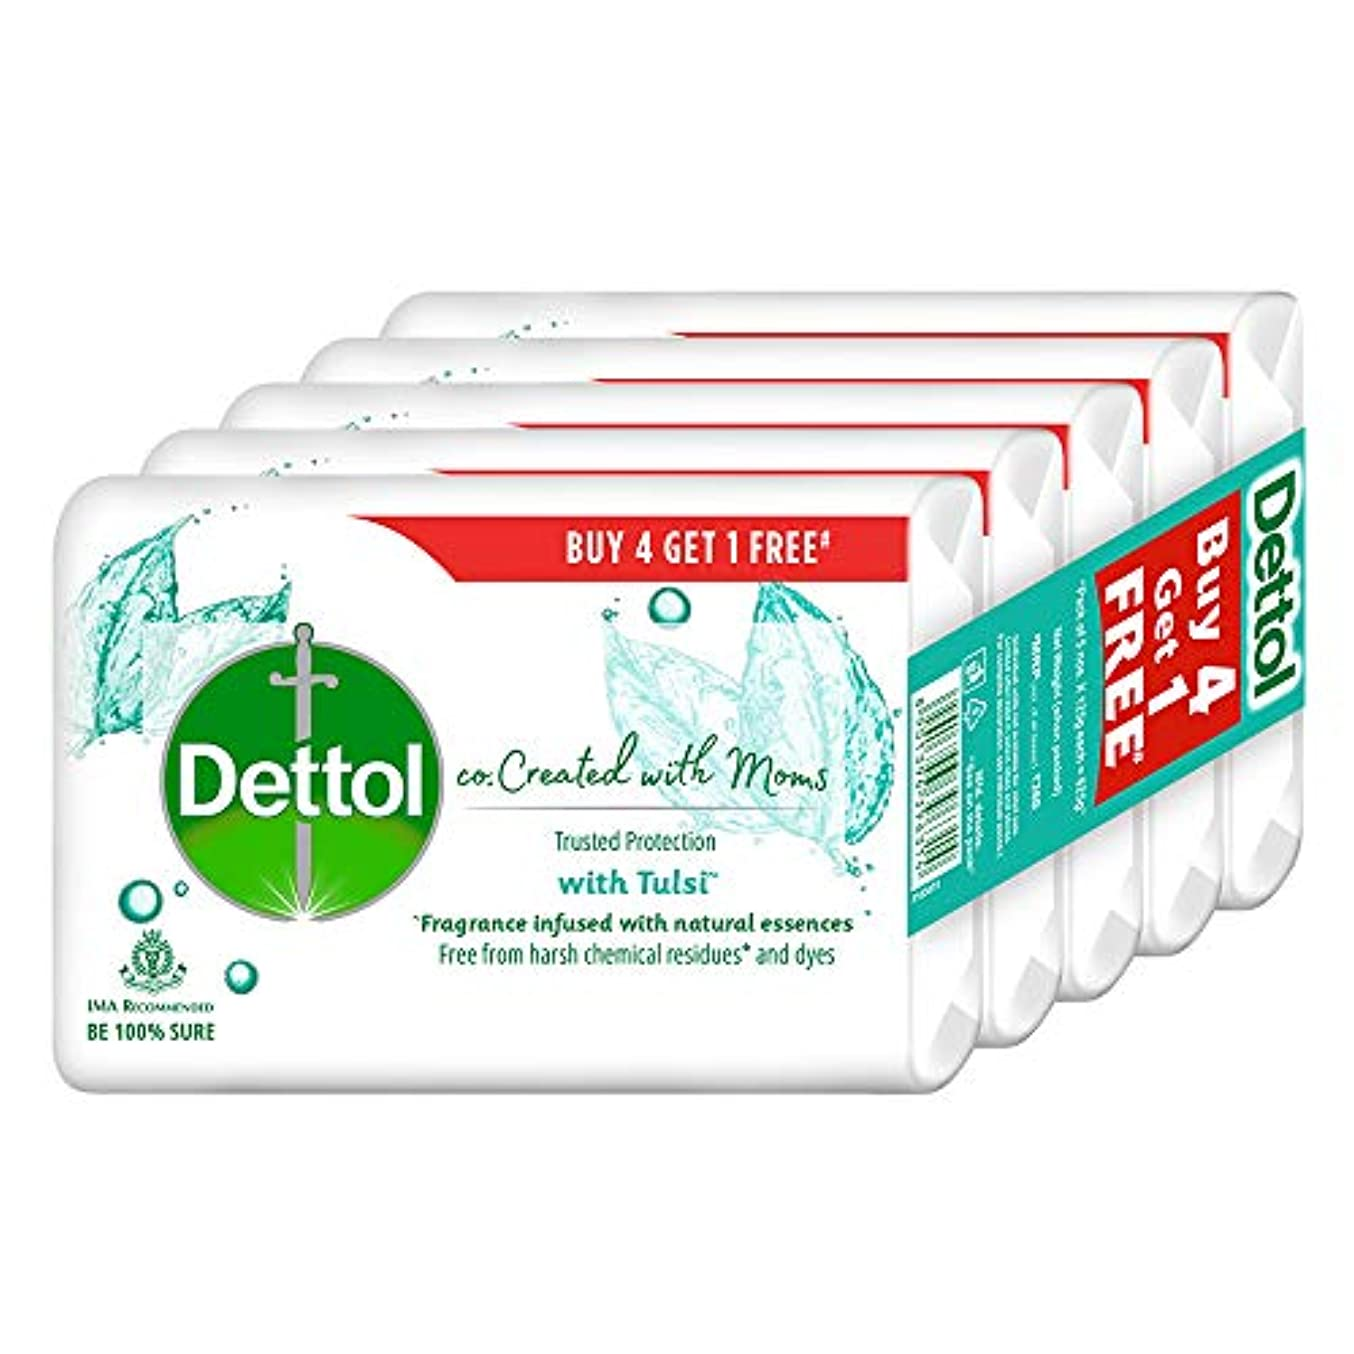 溶接離すパッケージDettol Co-created with moms Tulsi Bathing Soap, 125gm (Buy 4 Get 1 Free)